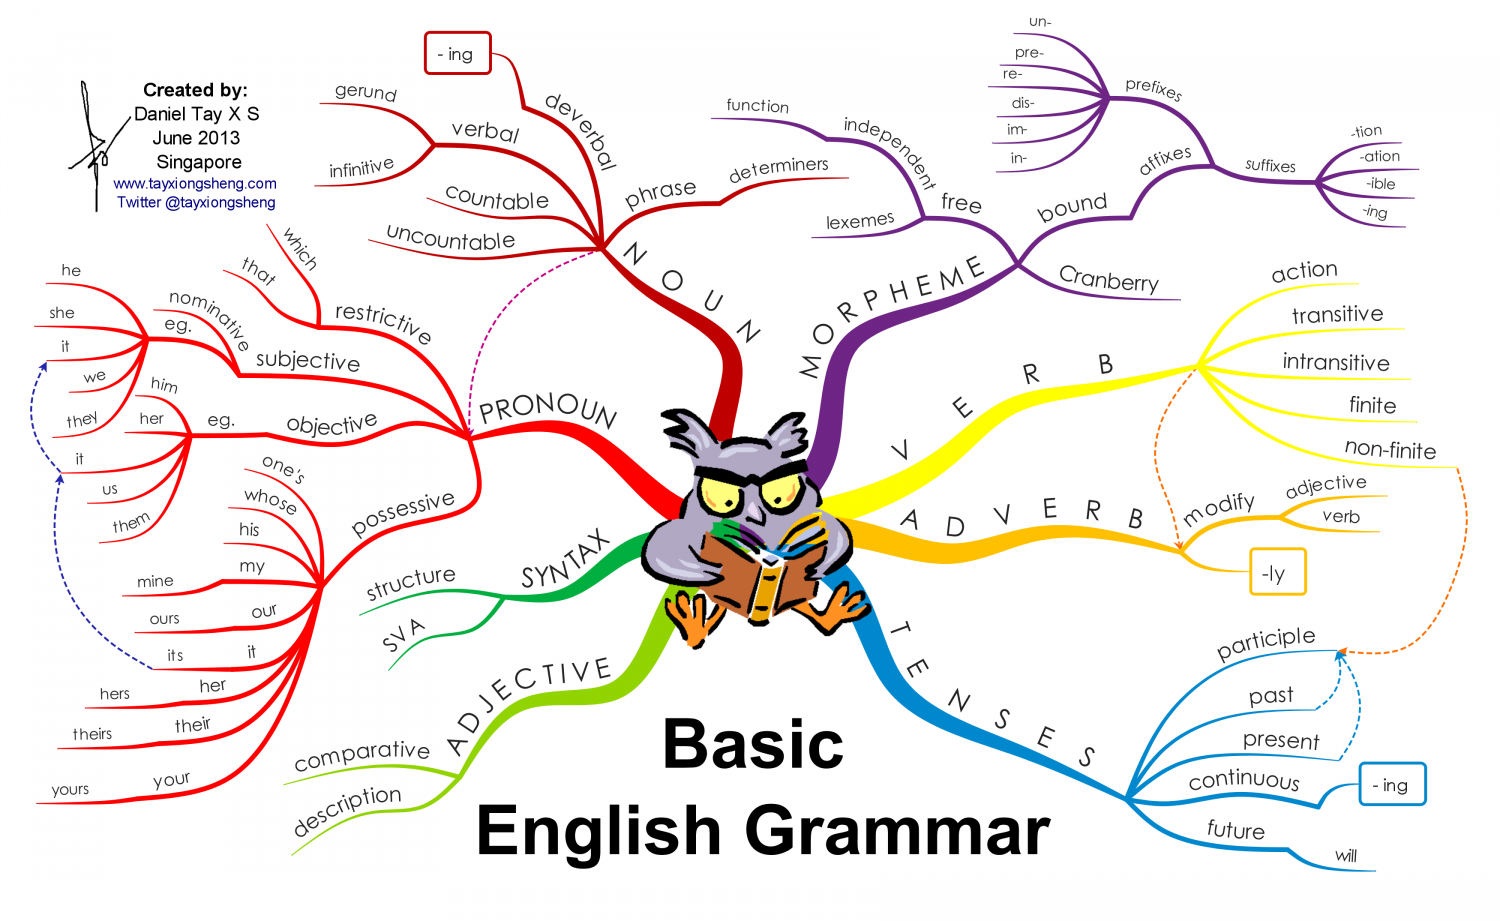 basics of english grammar Basics of english grammarpresent tense be, demonstratives, possessive adjectives, present continous, can, prepositions scribd is the world's largest social reading and publishing site search search.